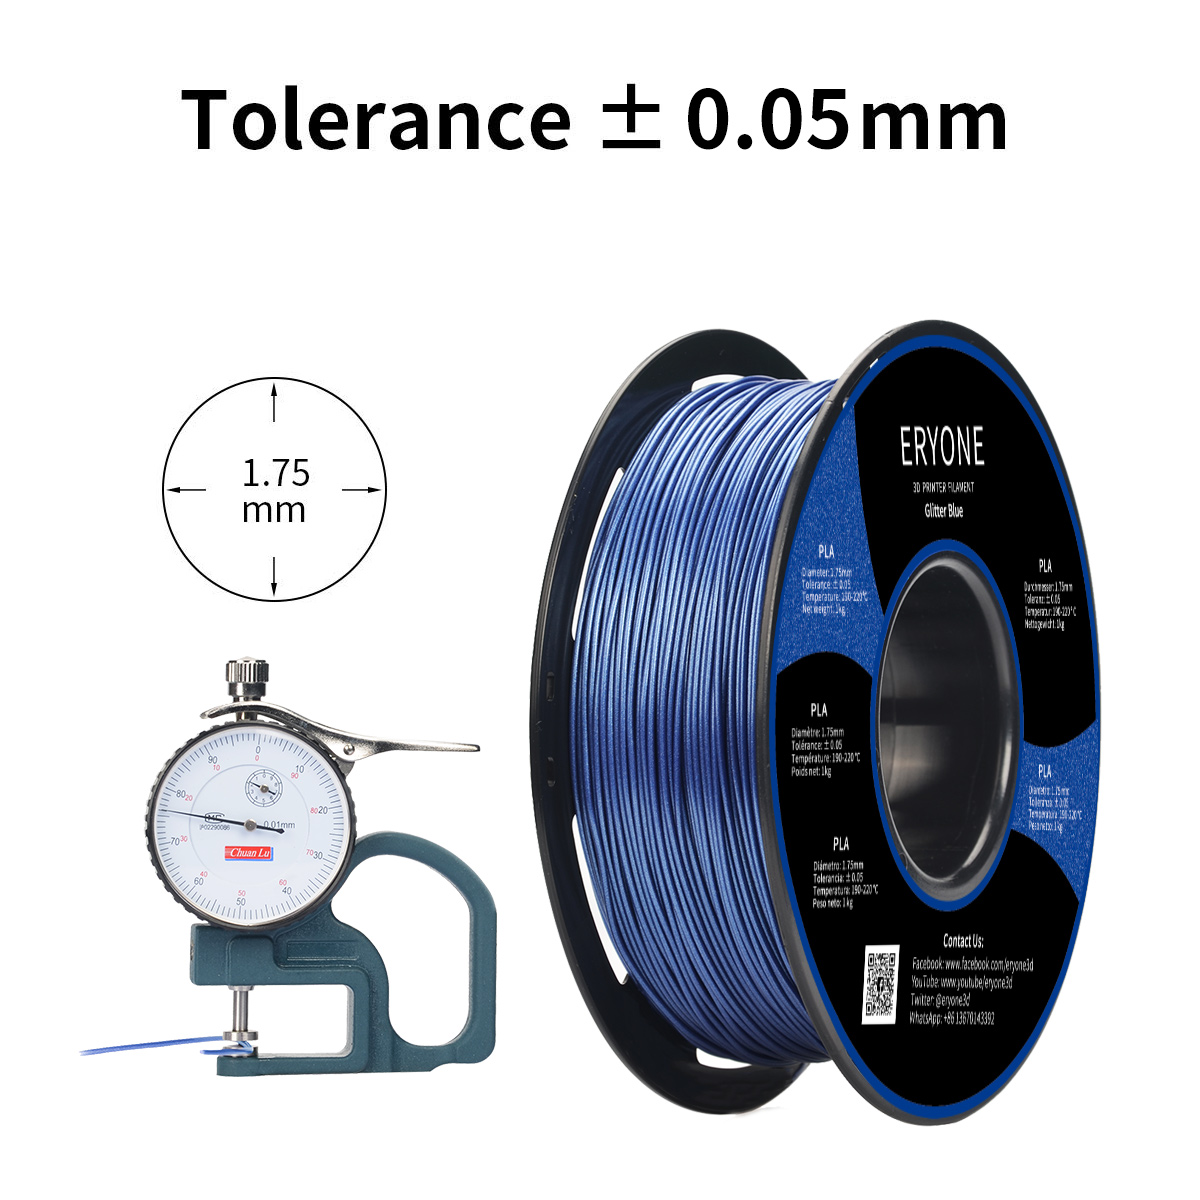 ERYONE PLA Filament 1.75mm, Sparky/Glitter Blue,  for 3D Printer and 3D Pen, 1KG, 1 Spool